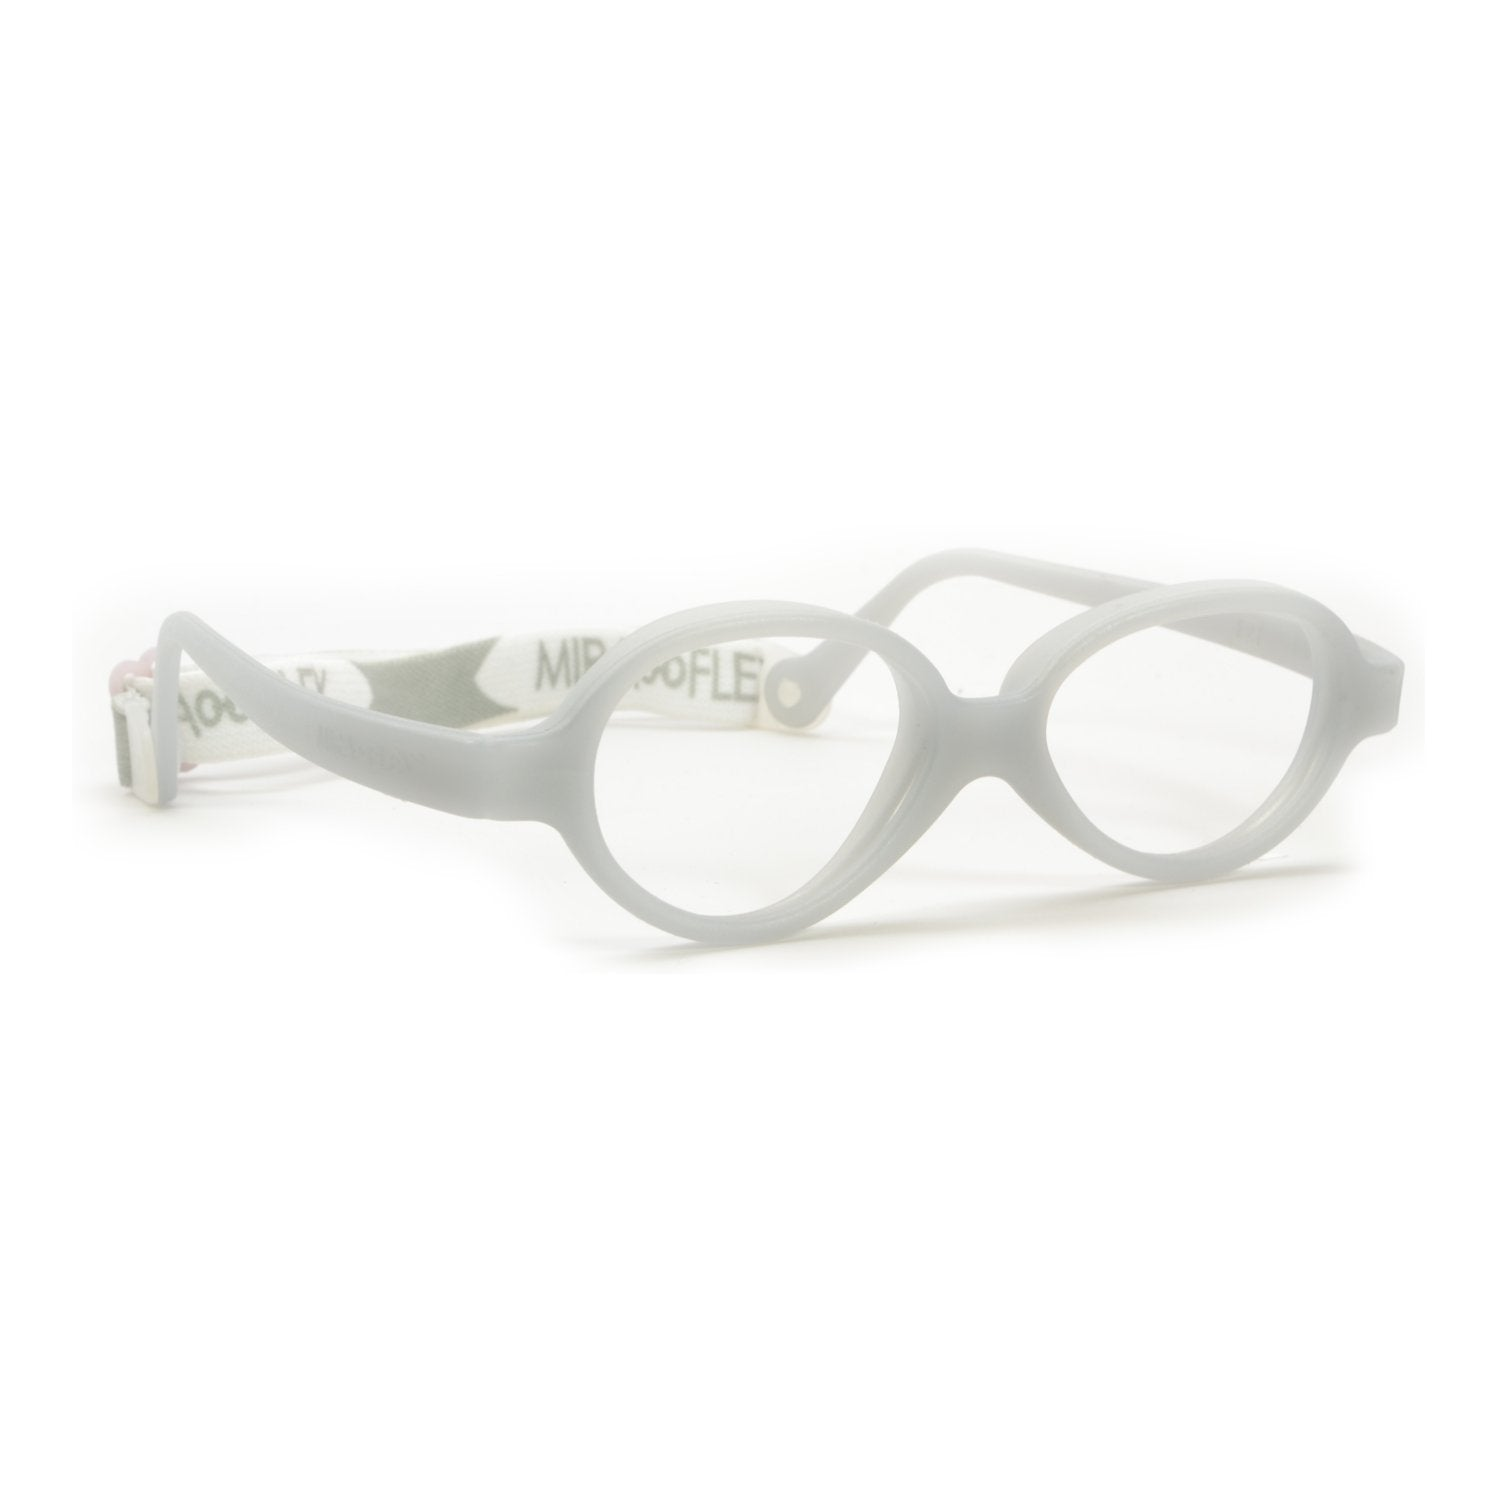 Miraflex Flexible and Safe Eyeglasses Baby One 44